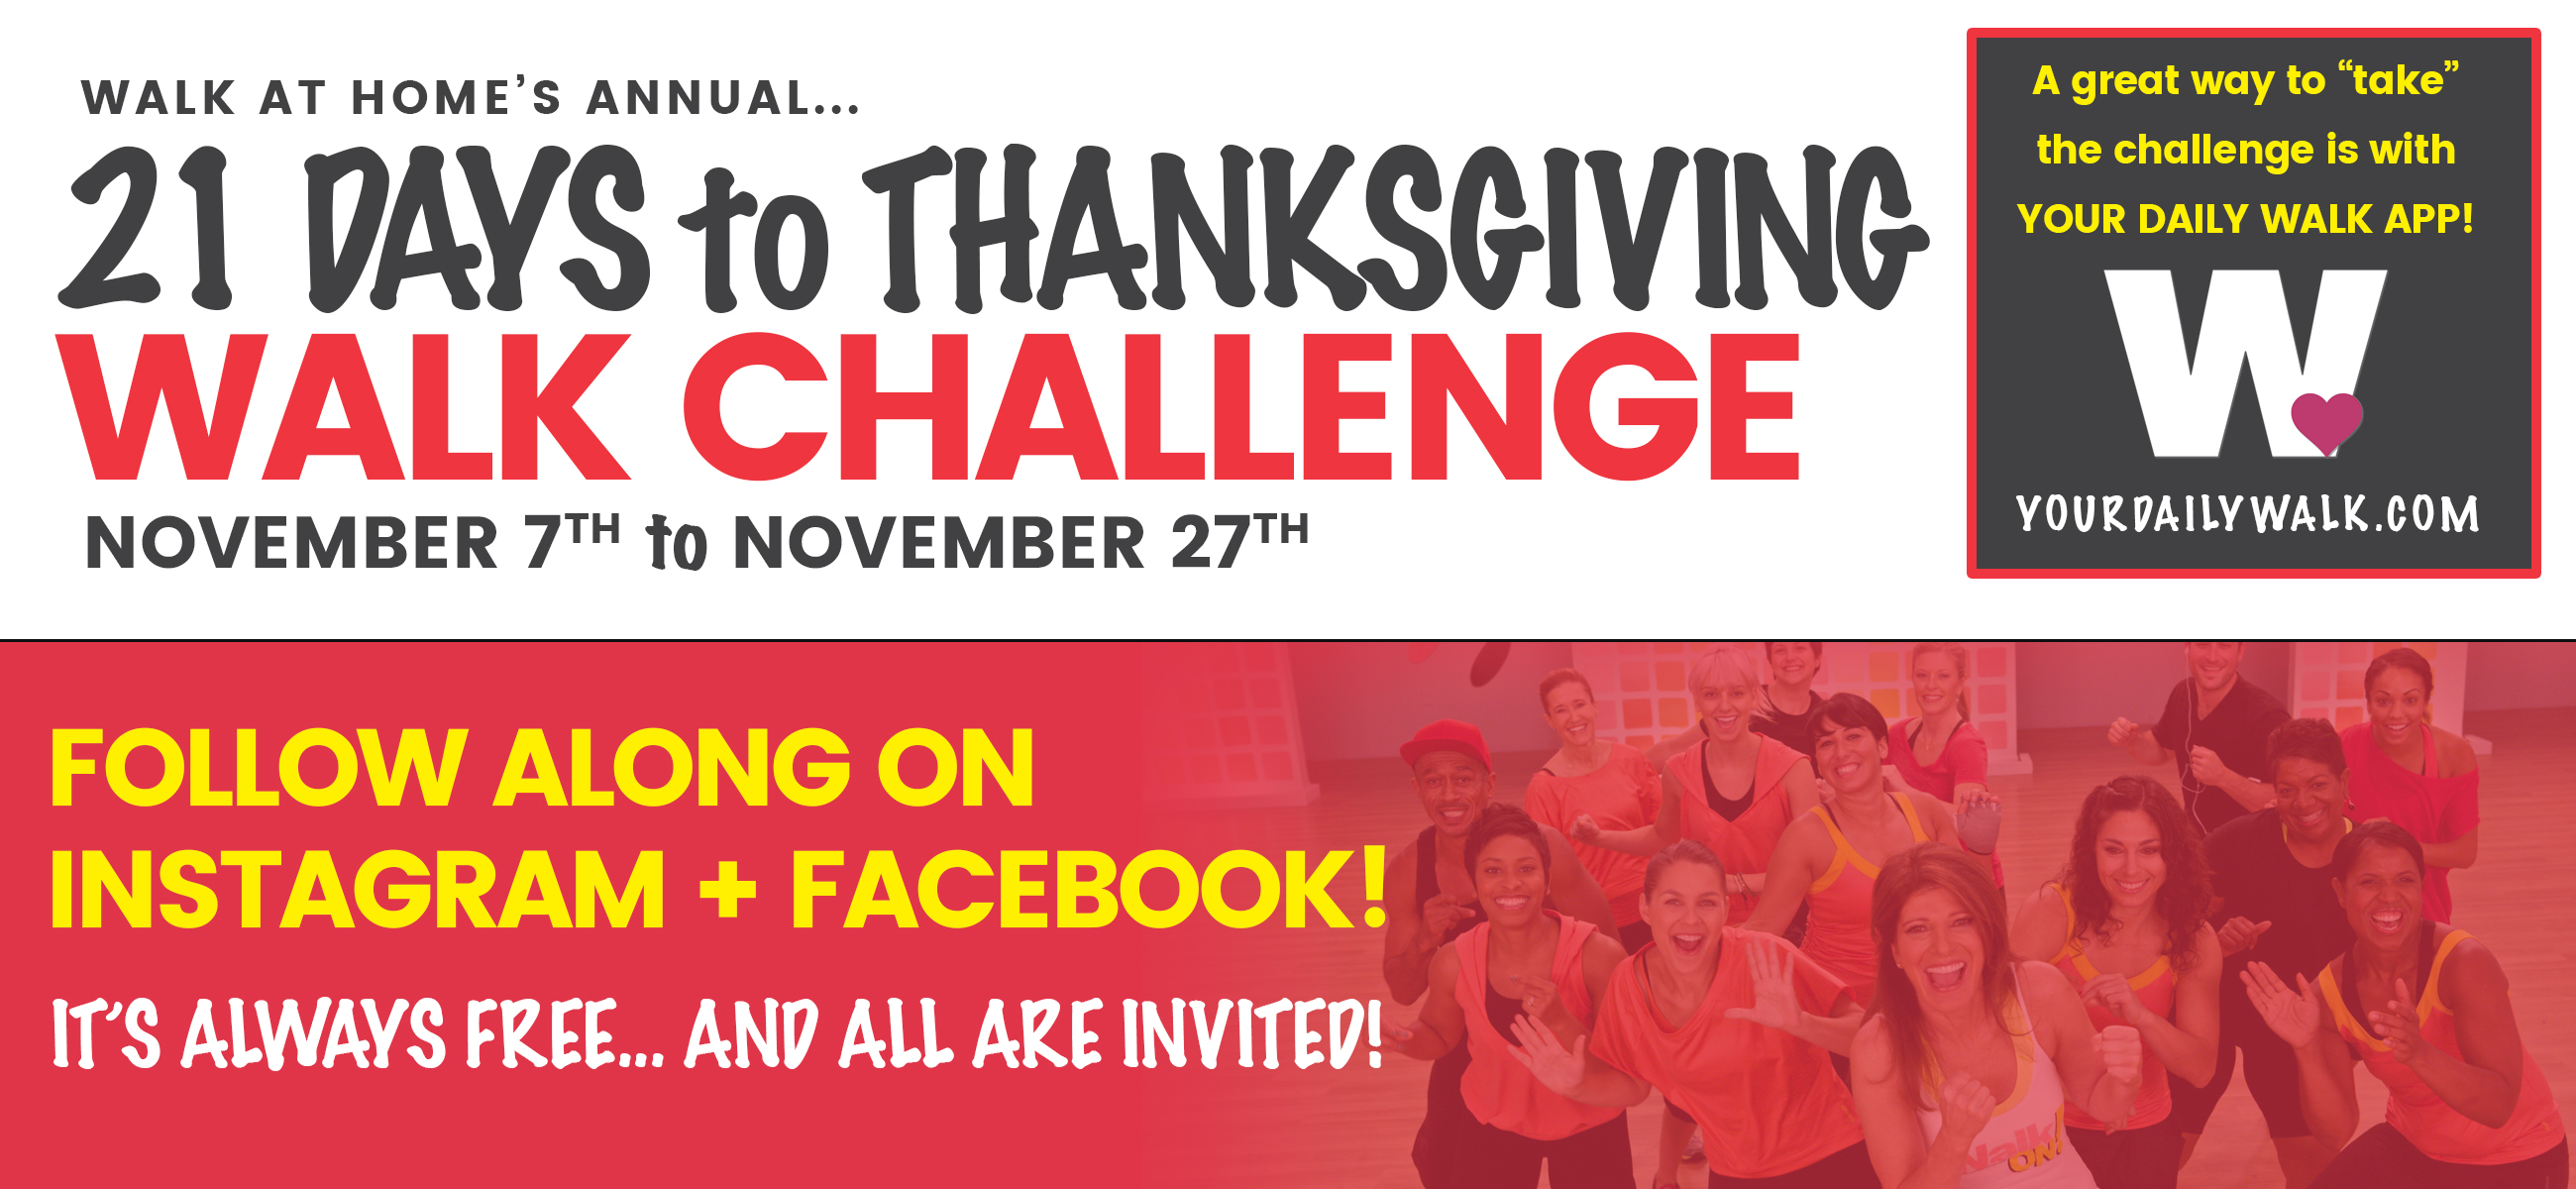 21 Days To Thanksgiving Challenge